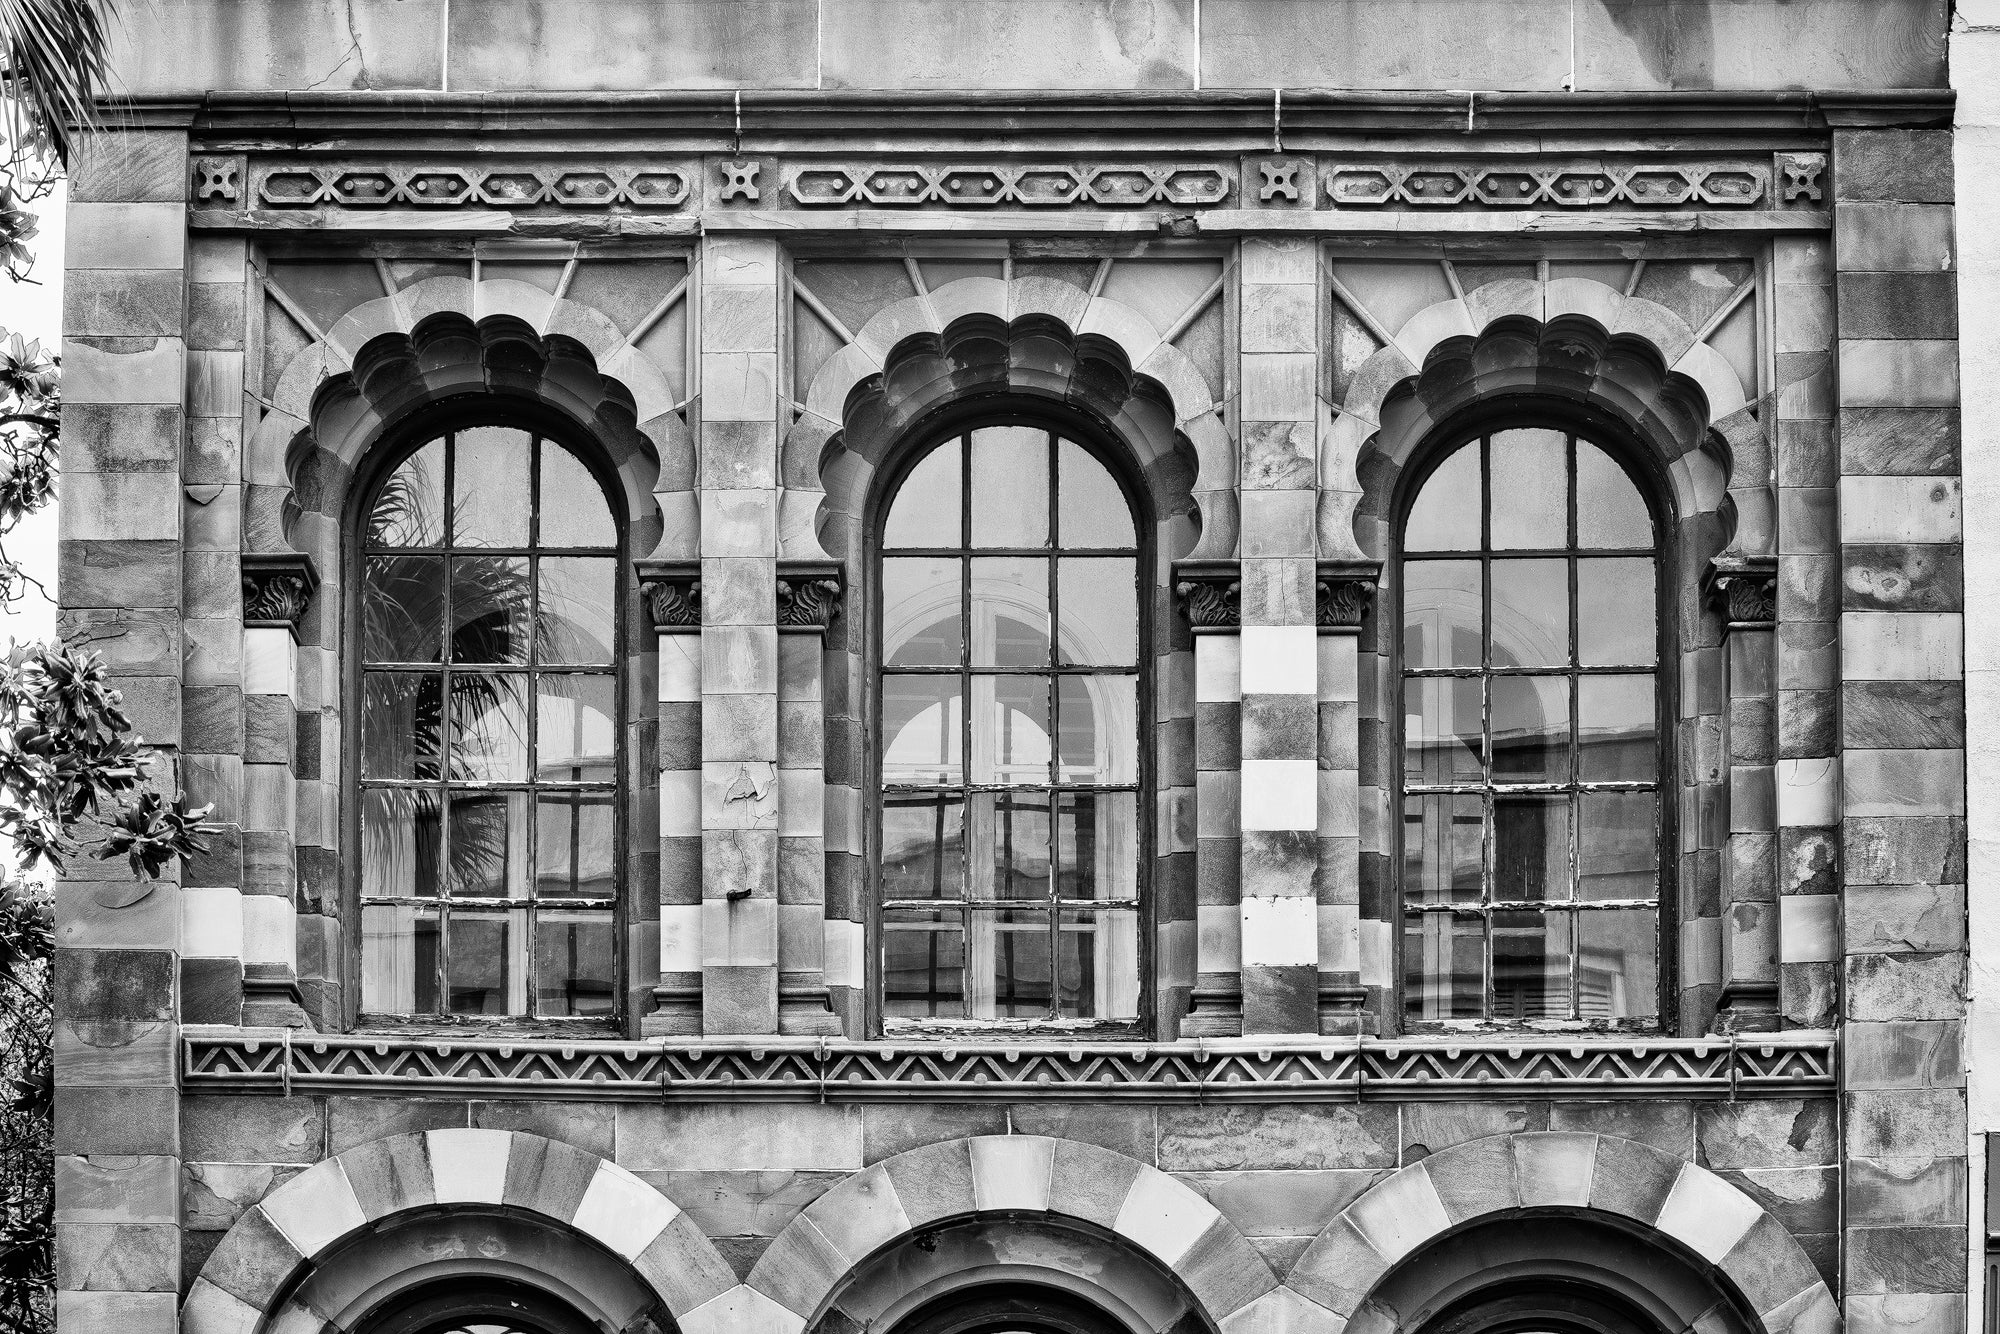 Front of Farmers and Exchange Bank in Charleston - Black and White Photograph by Keith Dotson. Buy a print here.